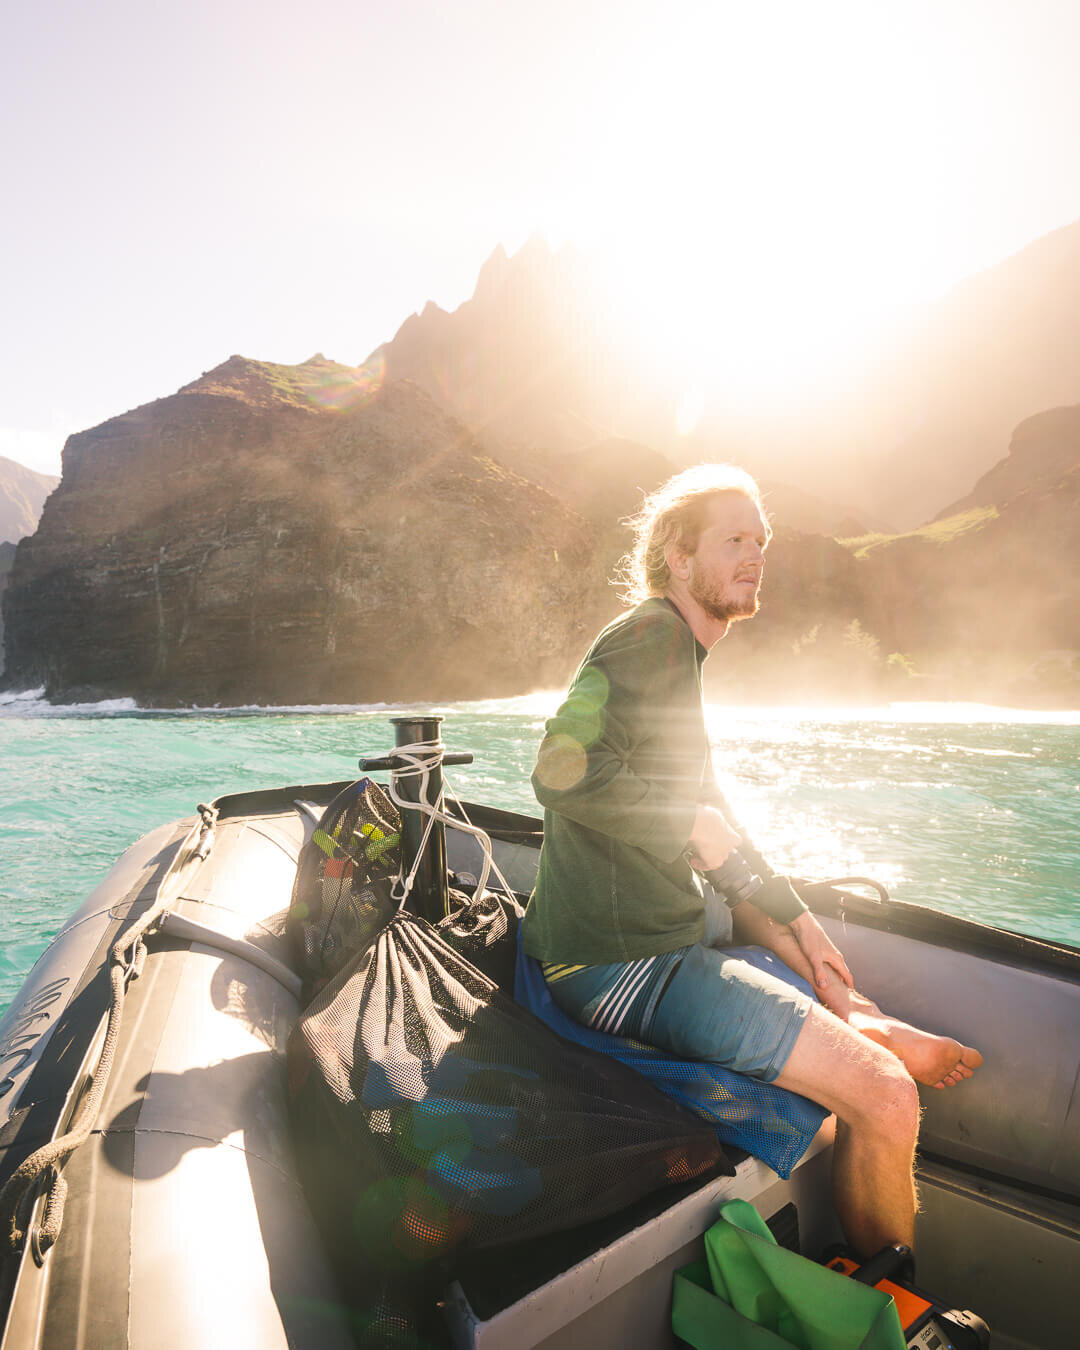 On a boat tour of Na Pali Coast you are likely to see dolphins and during certain times of the year whales!